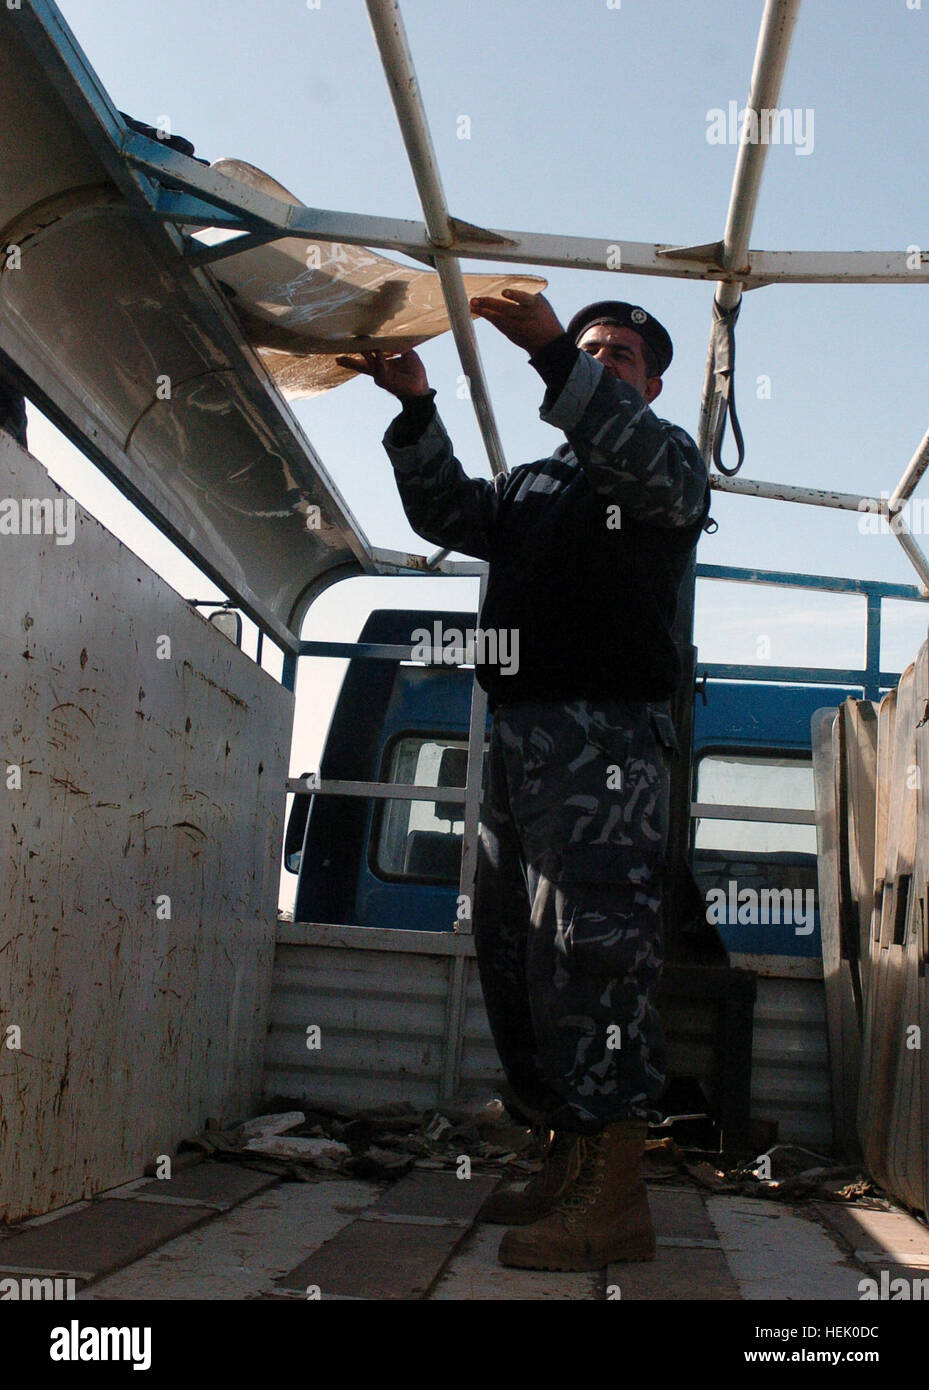 An Iraqi police officer stands on an empty truck that was later filled with civil disturbance equipment, such as - Stock Image